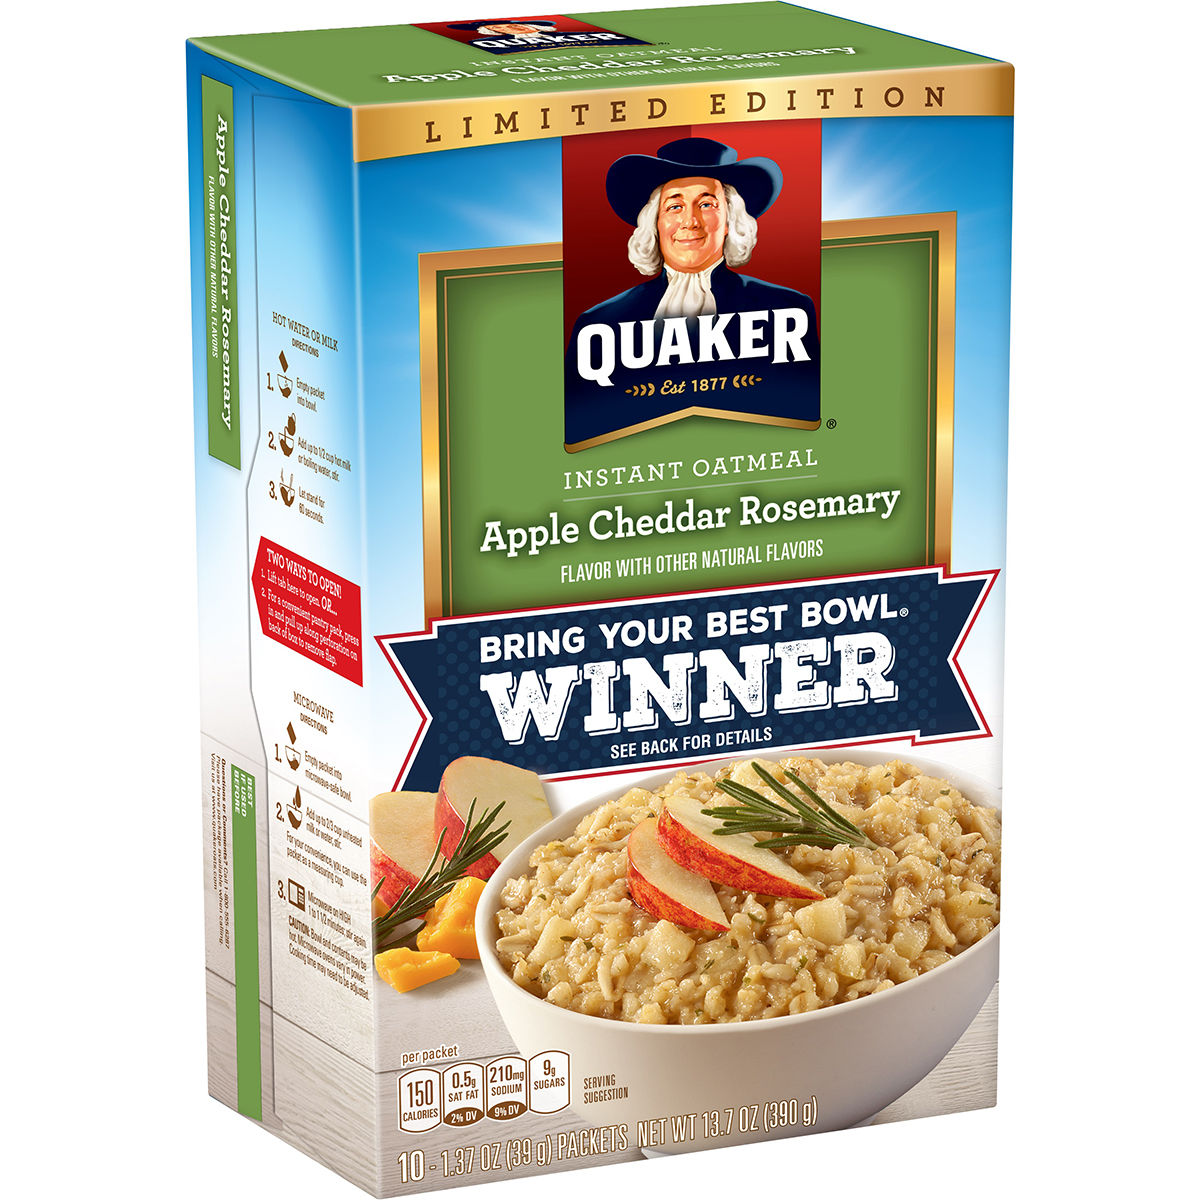 Apple cheddar rosemary oatmeal from Quaker